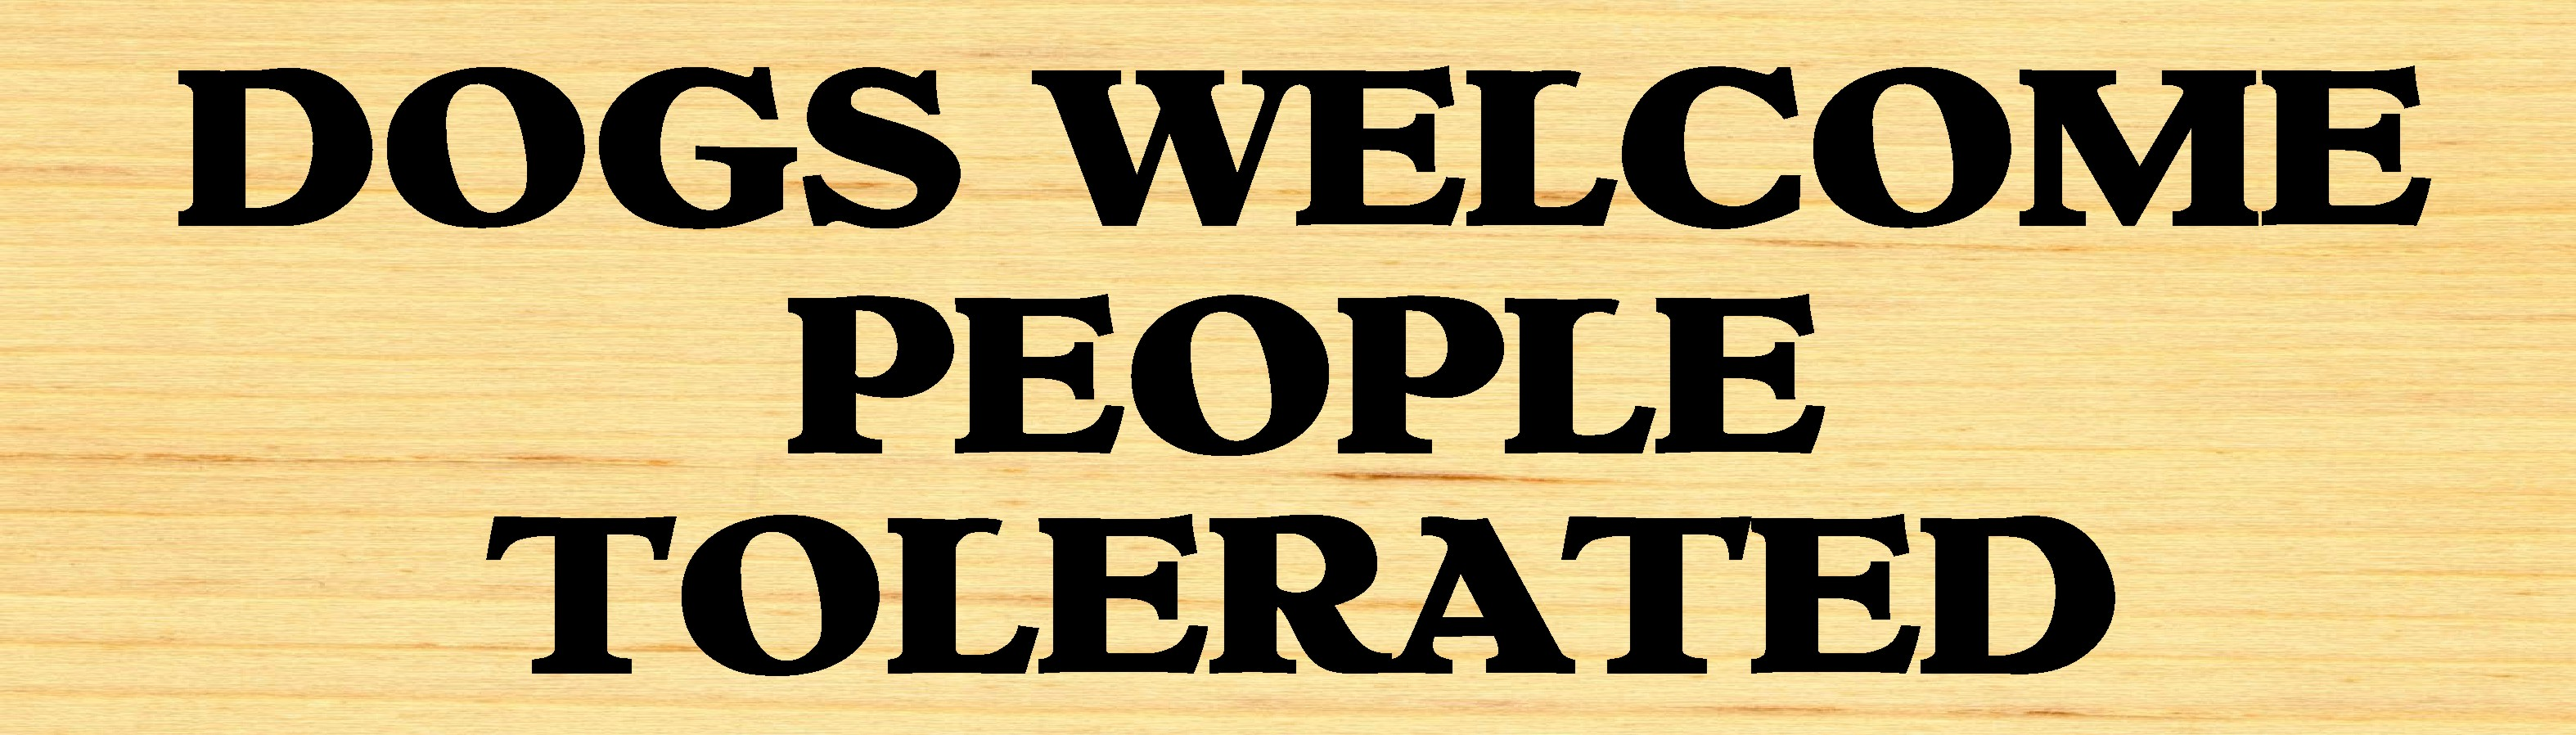 """DOGS WELCOME PEOPLE TOLERATED 10.5"""" X 3"""" WOODEN BLOCK SIGN"""